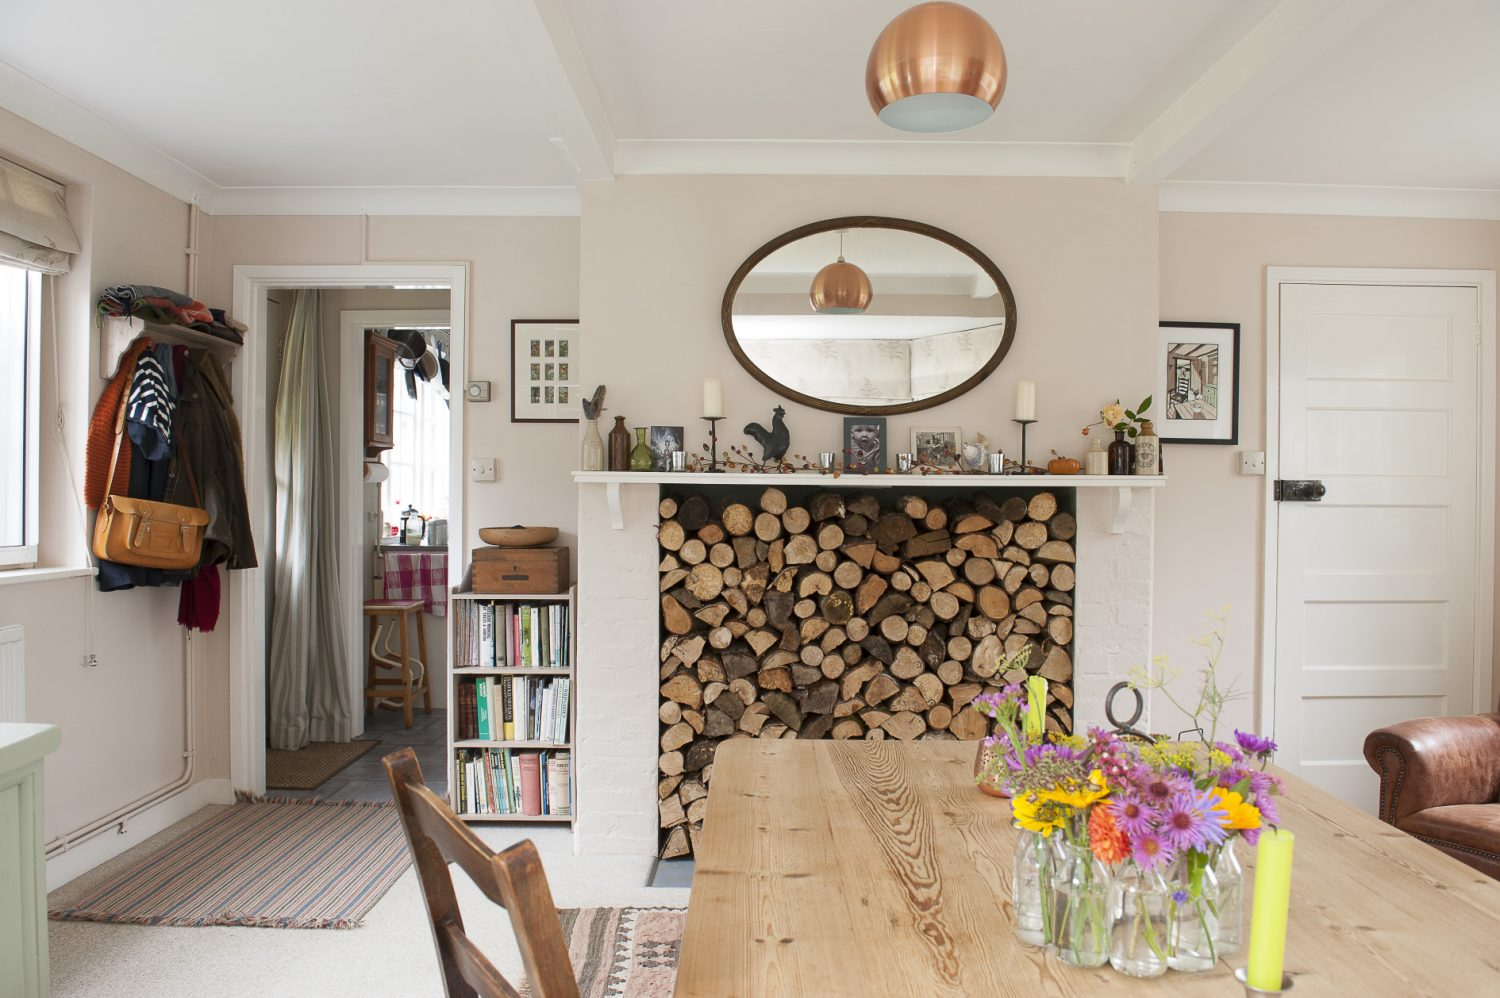 A fireplace which was once home to a kitchen range now acts as the focal point of the front room. A large bay window bathes the room in natural light